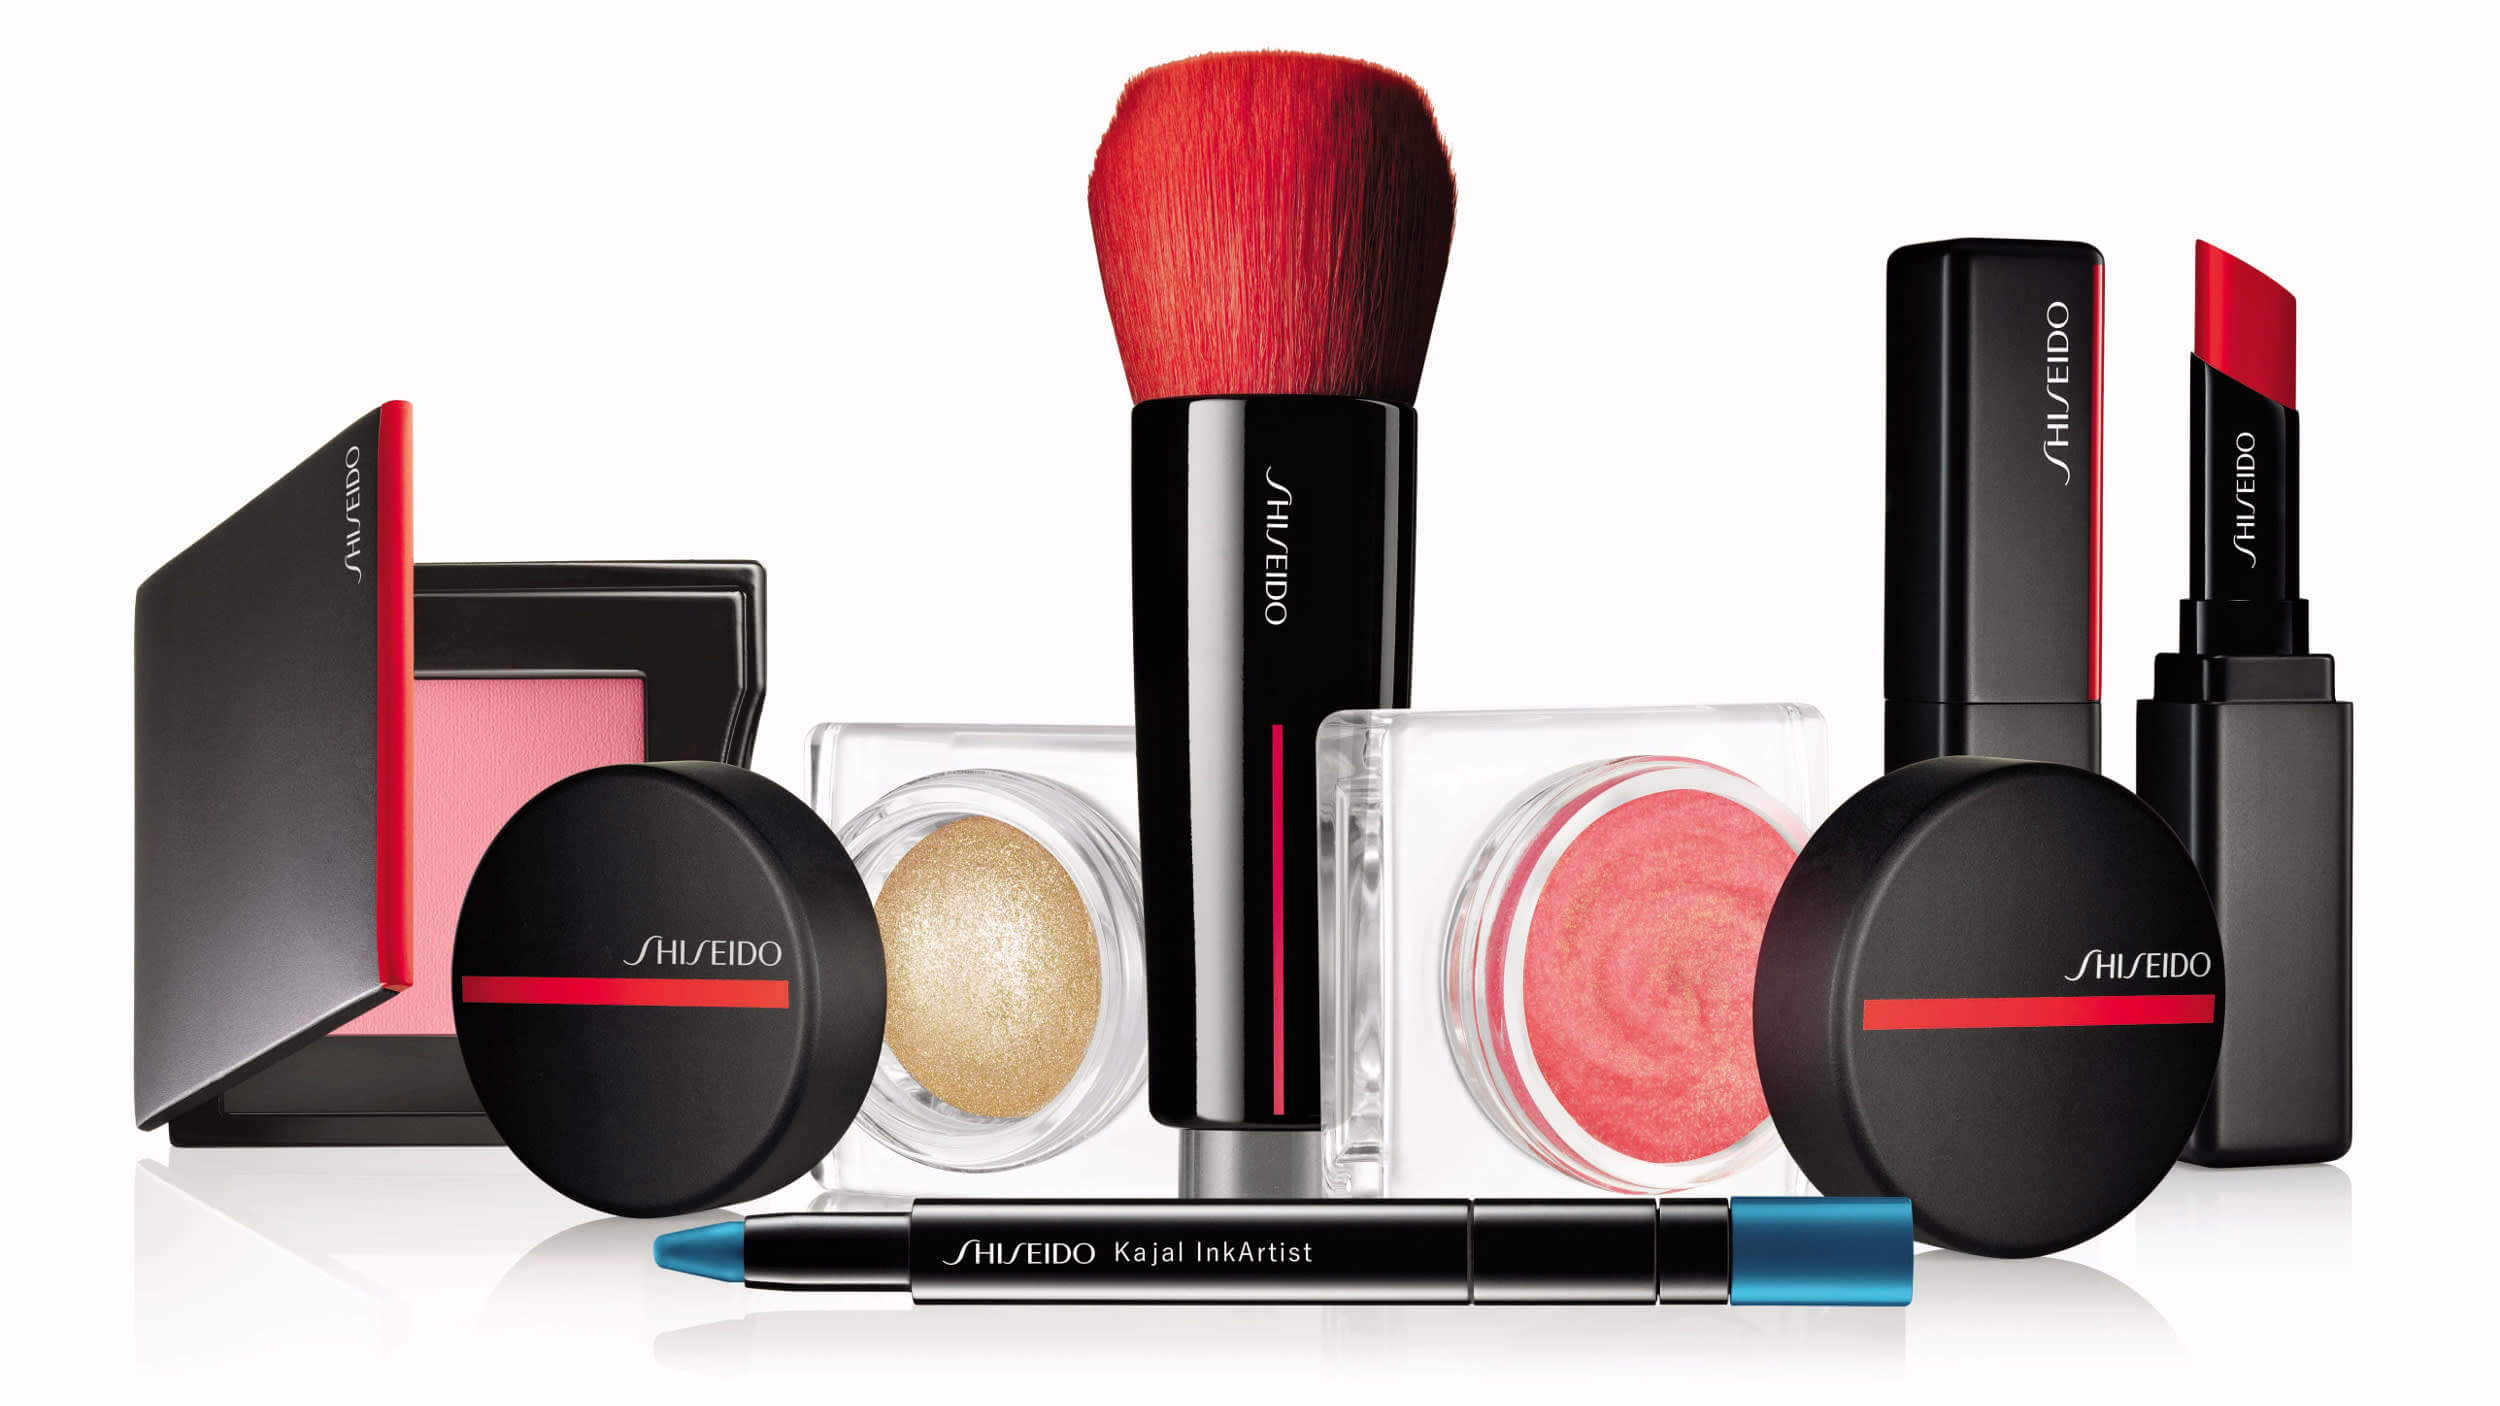 shiseido beauty data analytics